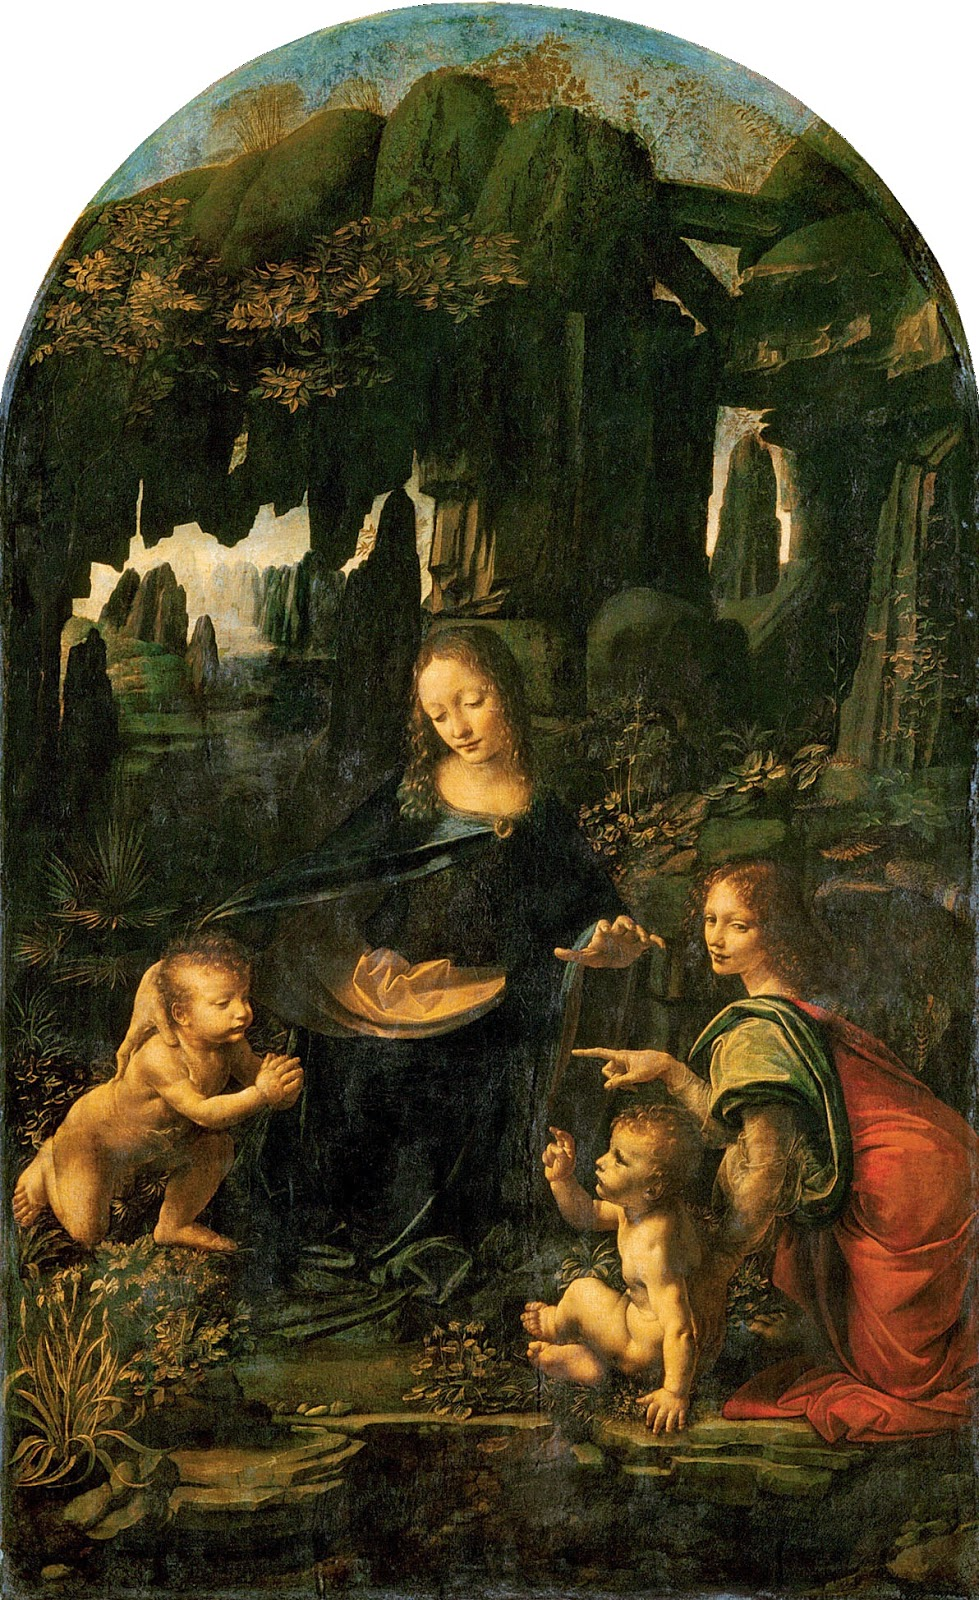 The Virgin of the Rocks (Louvre Version) by Leonardo da Vinci c1485